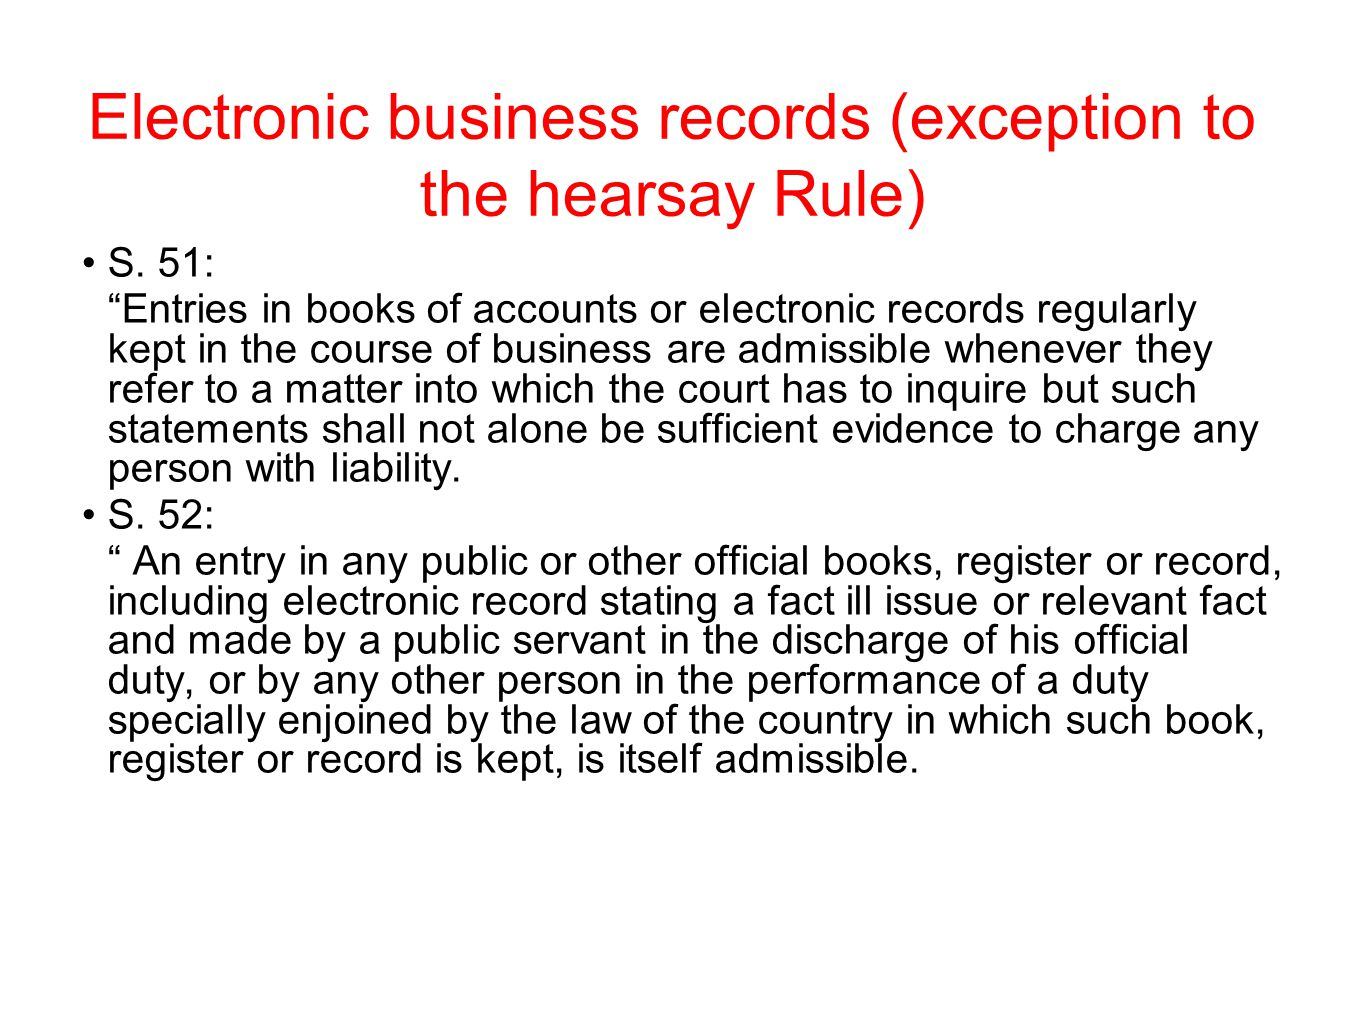 Electronic business records (exception to the hearsay Rule)